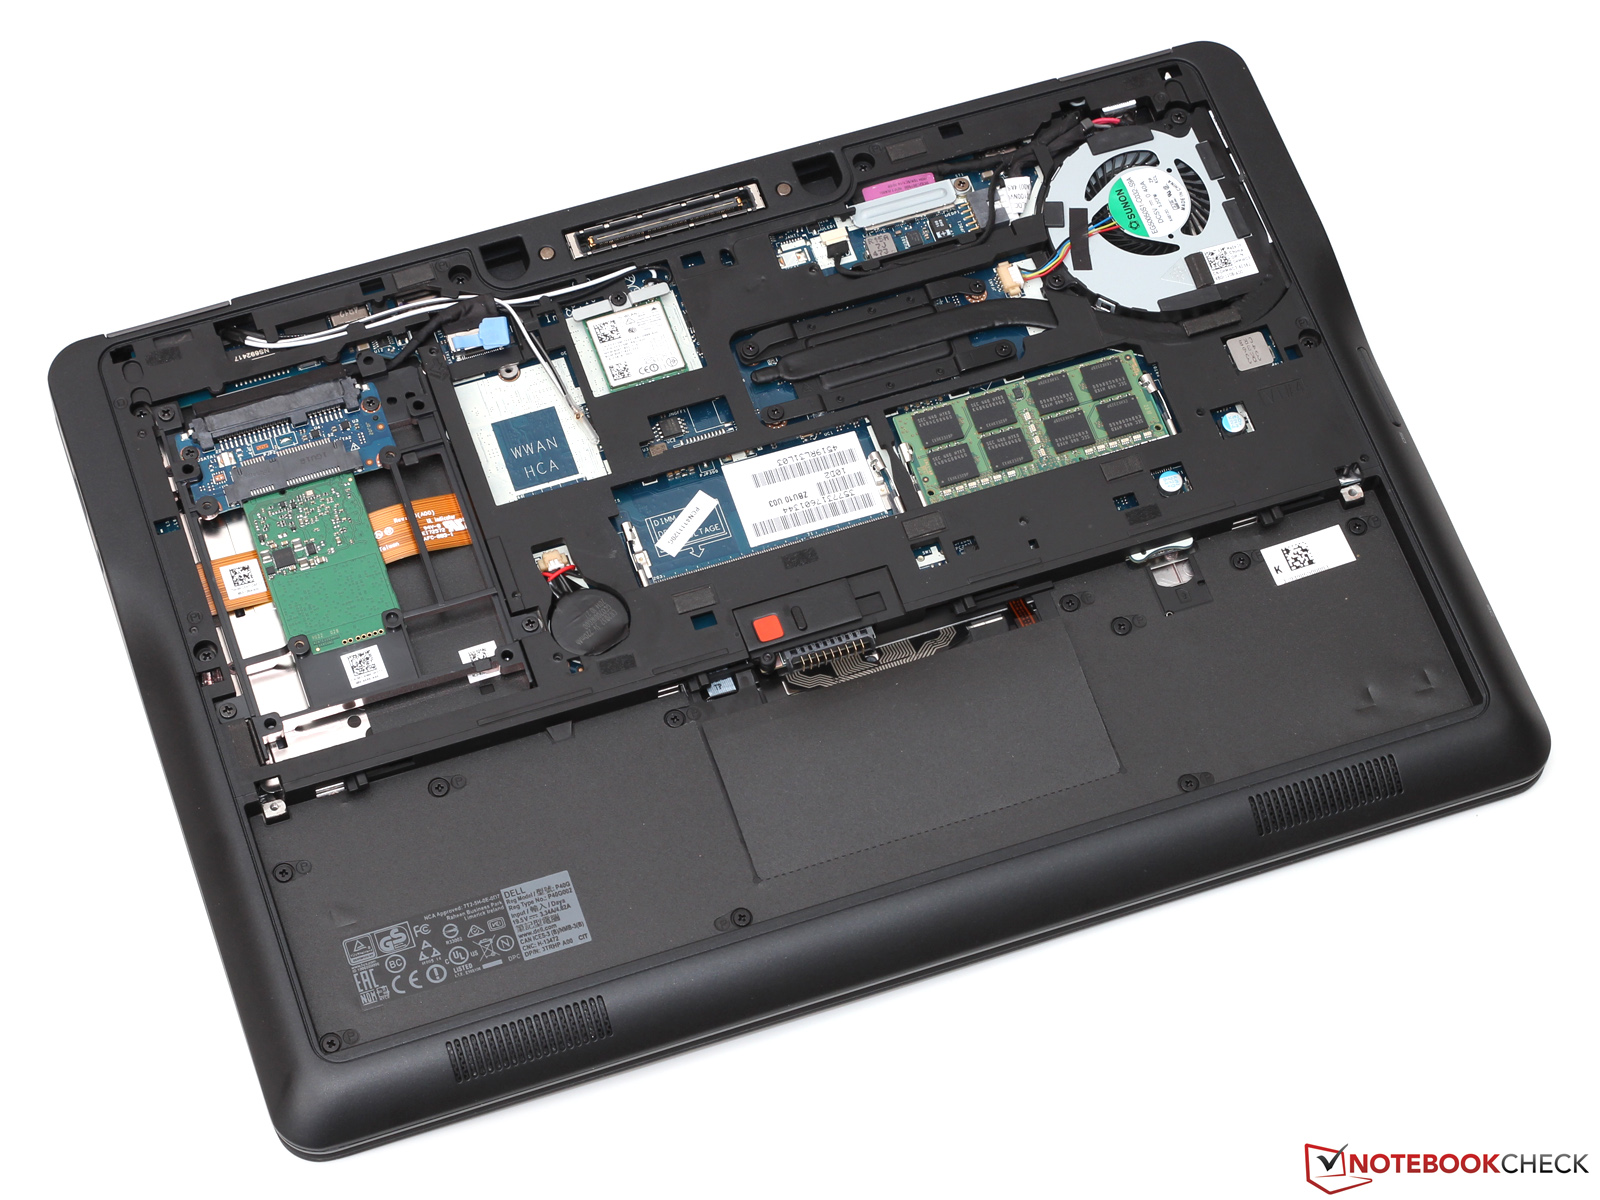 Review about Latitude E7470? : Dell